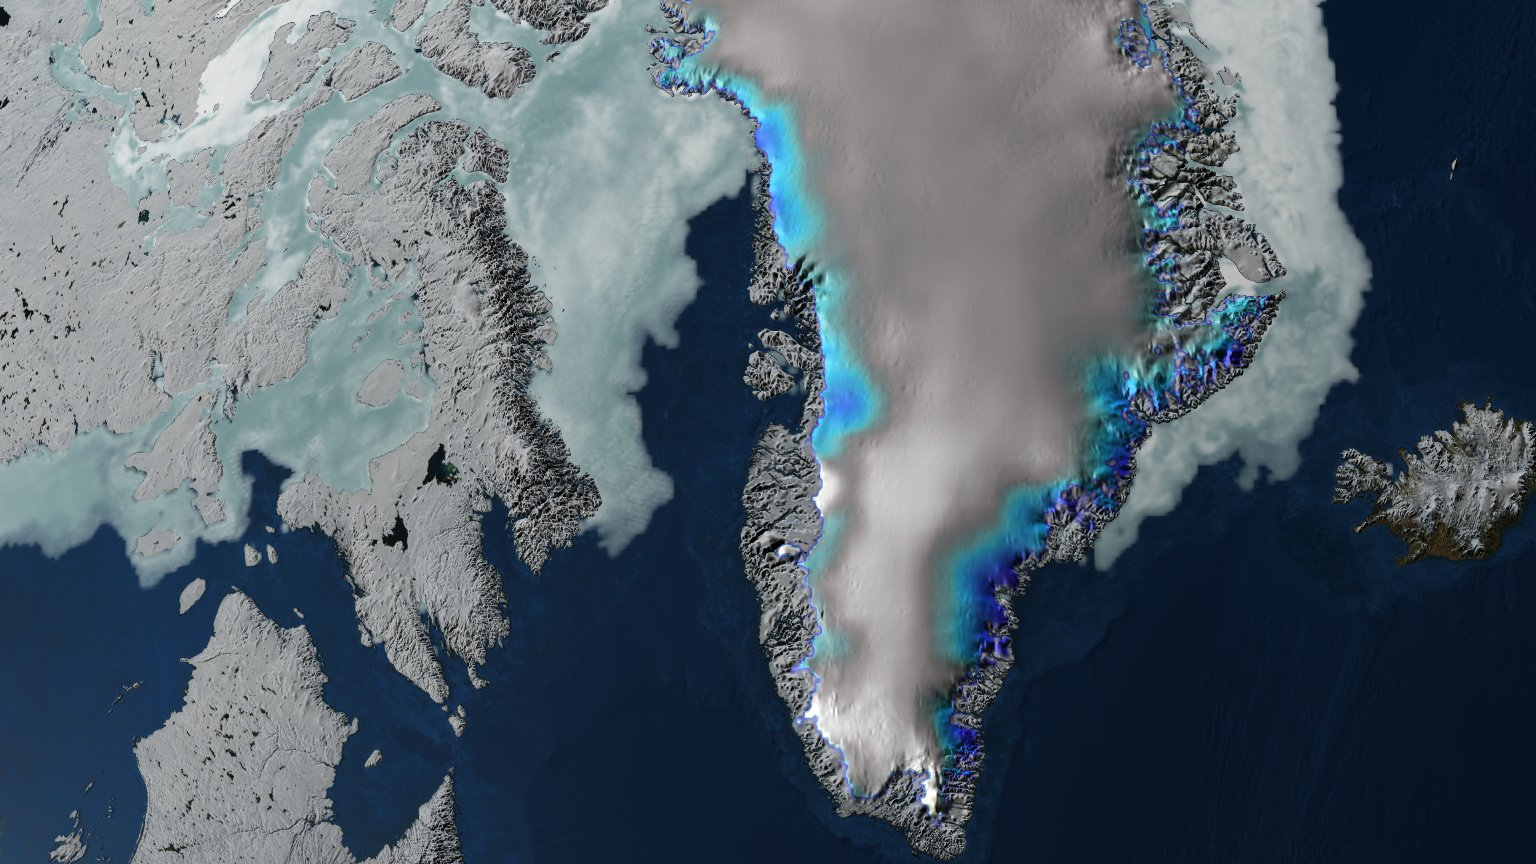 Updated Jakobshavn Glacier Calving Front Retreat from 2001 through 2006 with Blue/White Elevation Change over Greenland